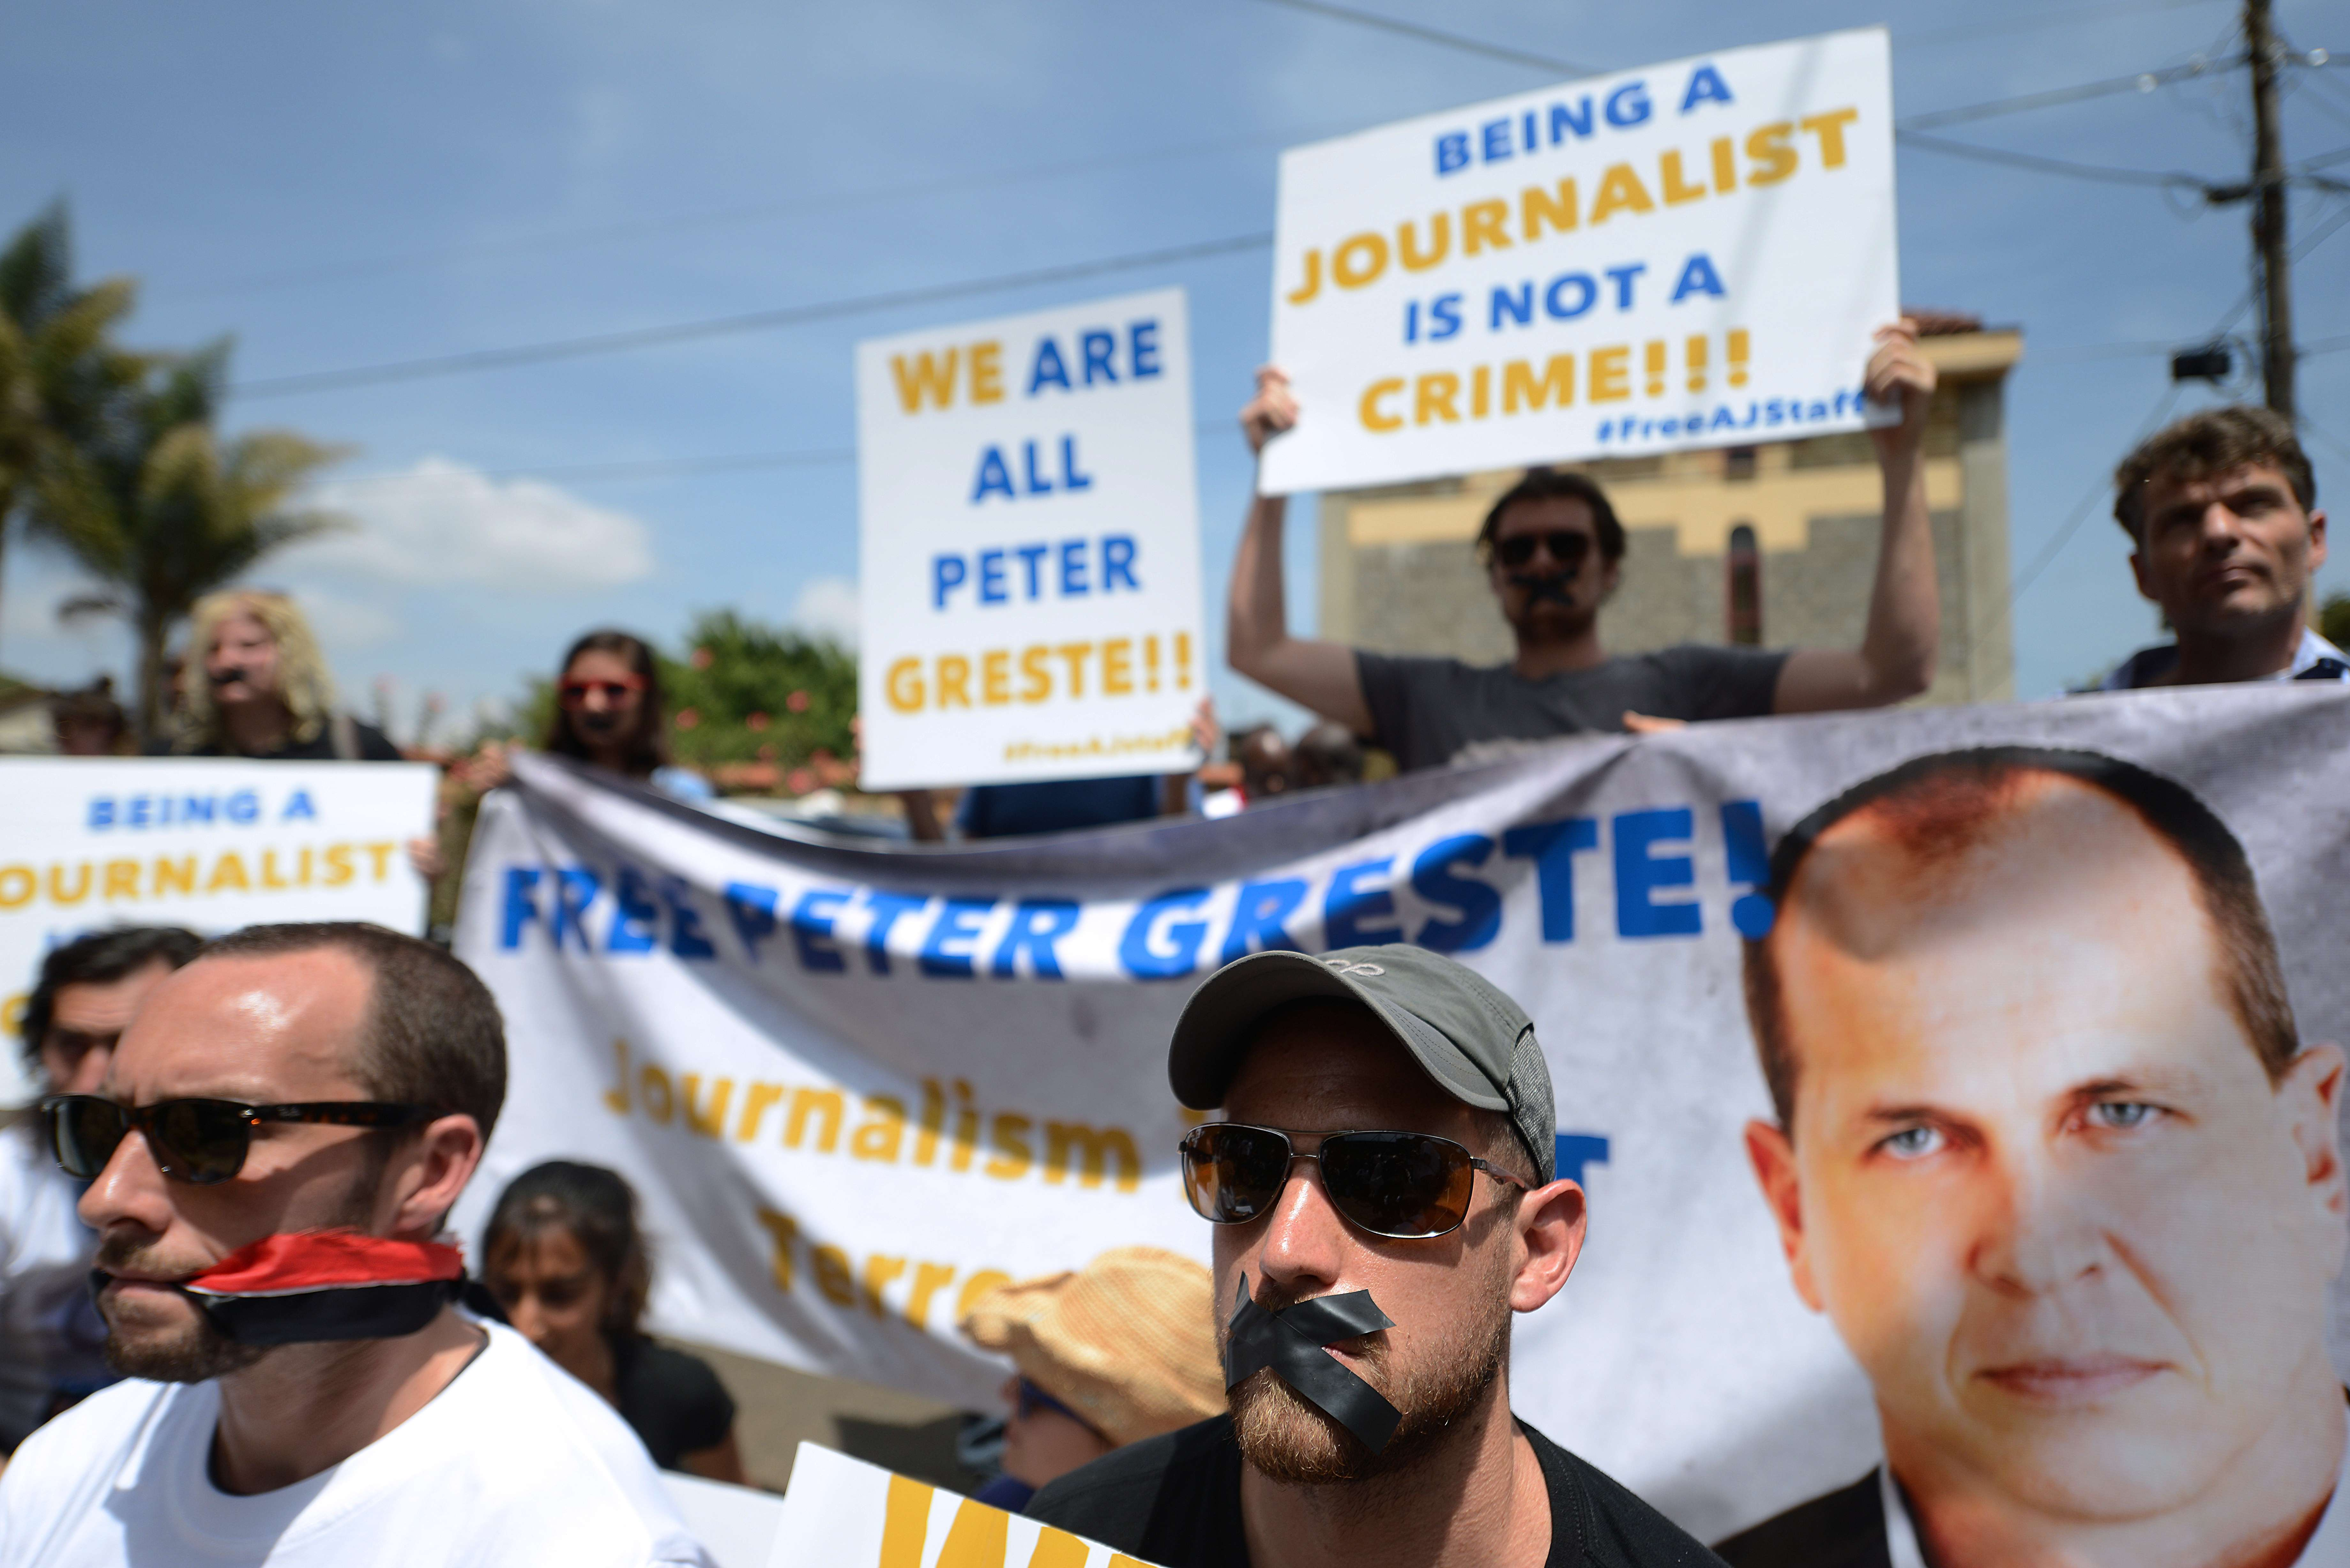 Journalists demonstrate in Nairobi for the release of Al Jazeera journalists in Egypt, as they march to the Egyptian Embassy in Nairobi, on 4 February  (AFP PHOTO/SIMON MAINA)